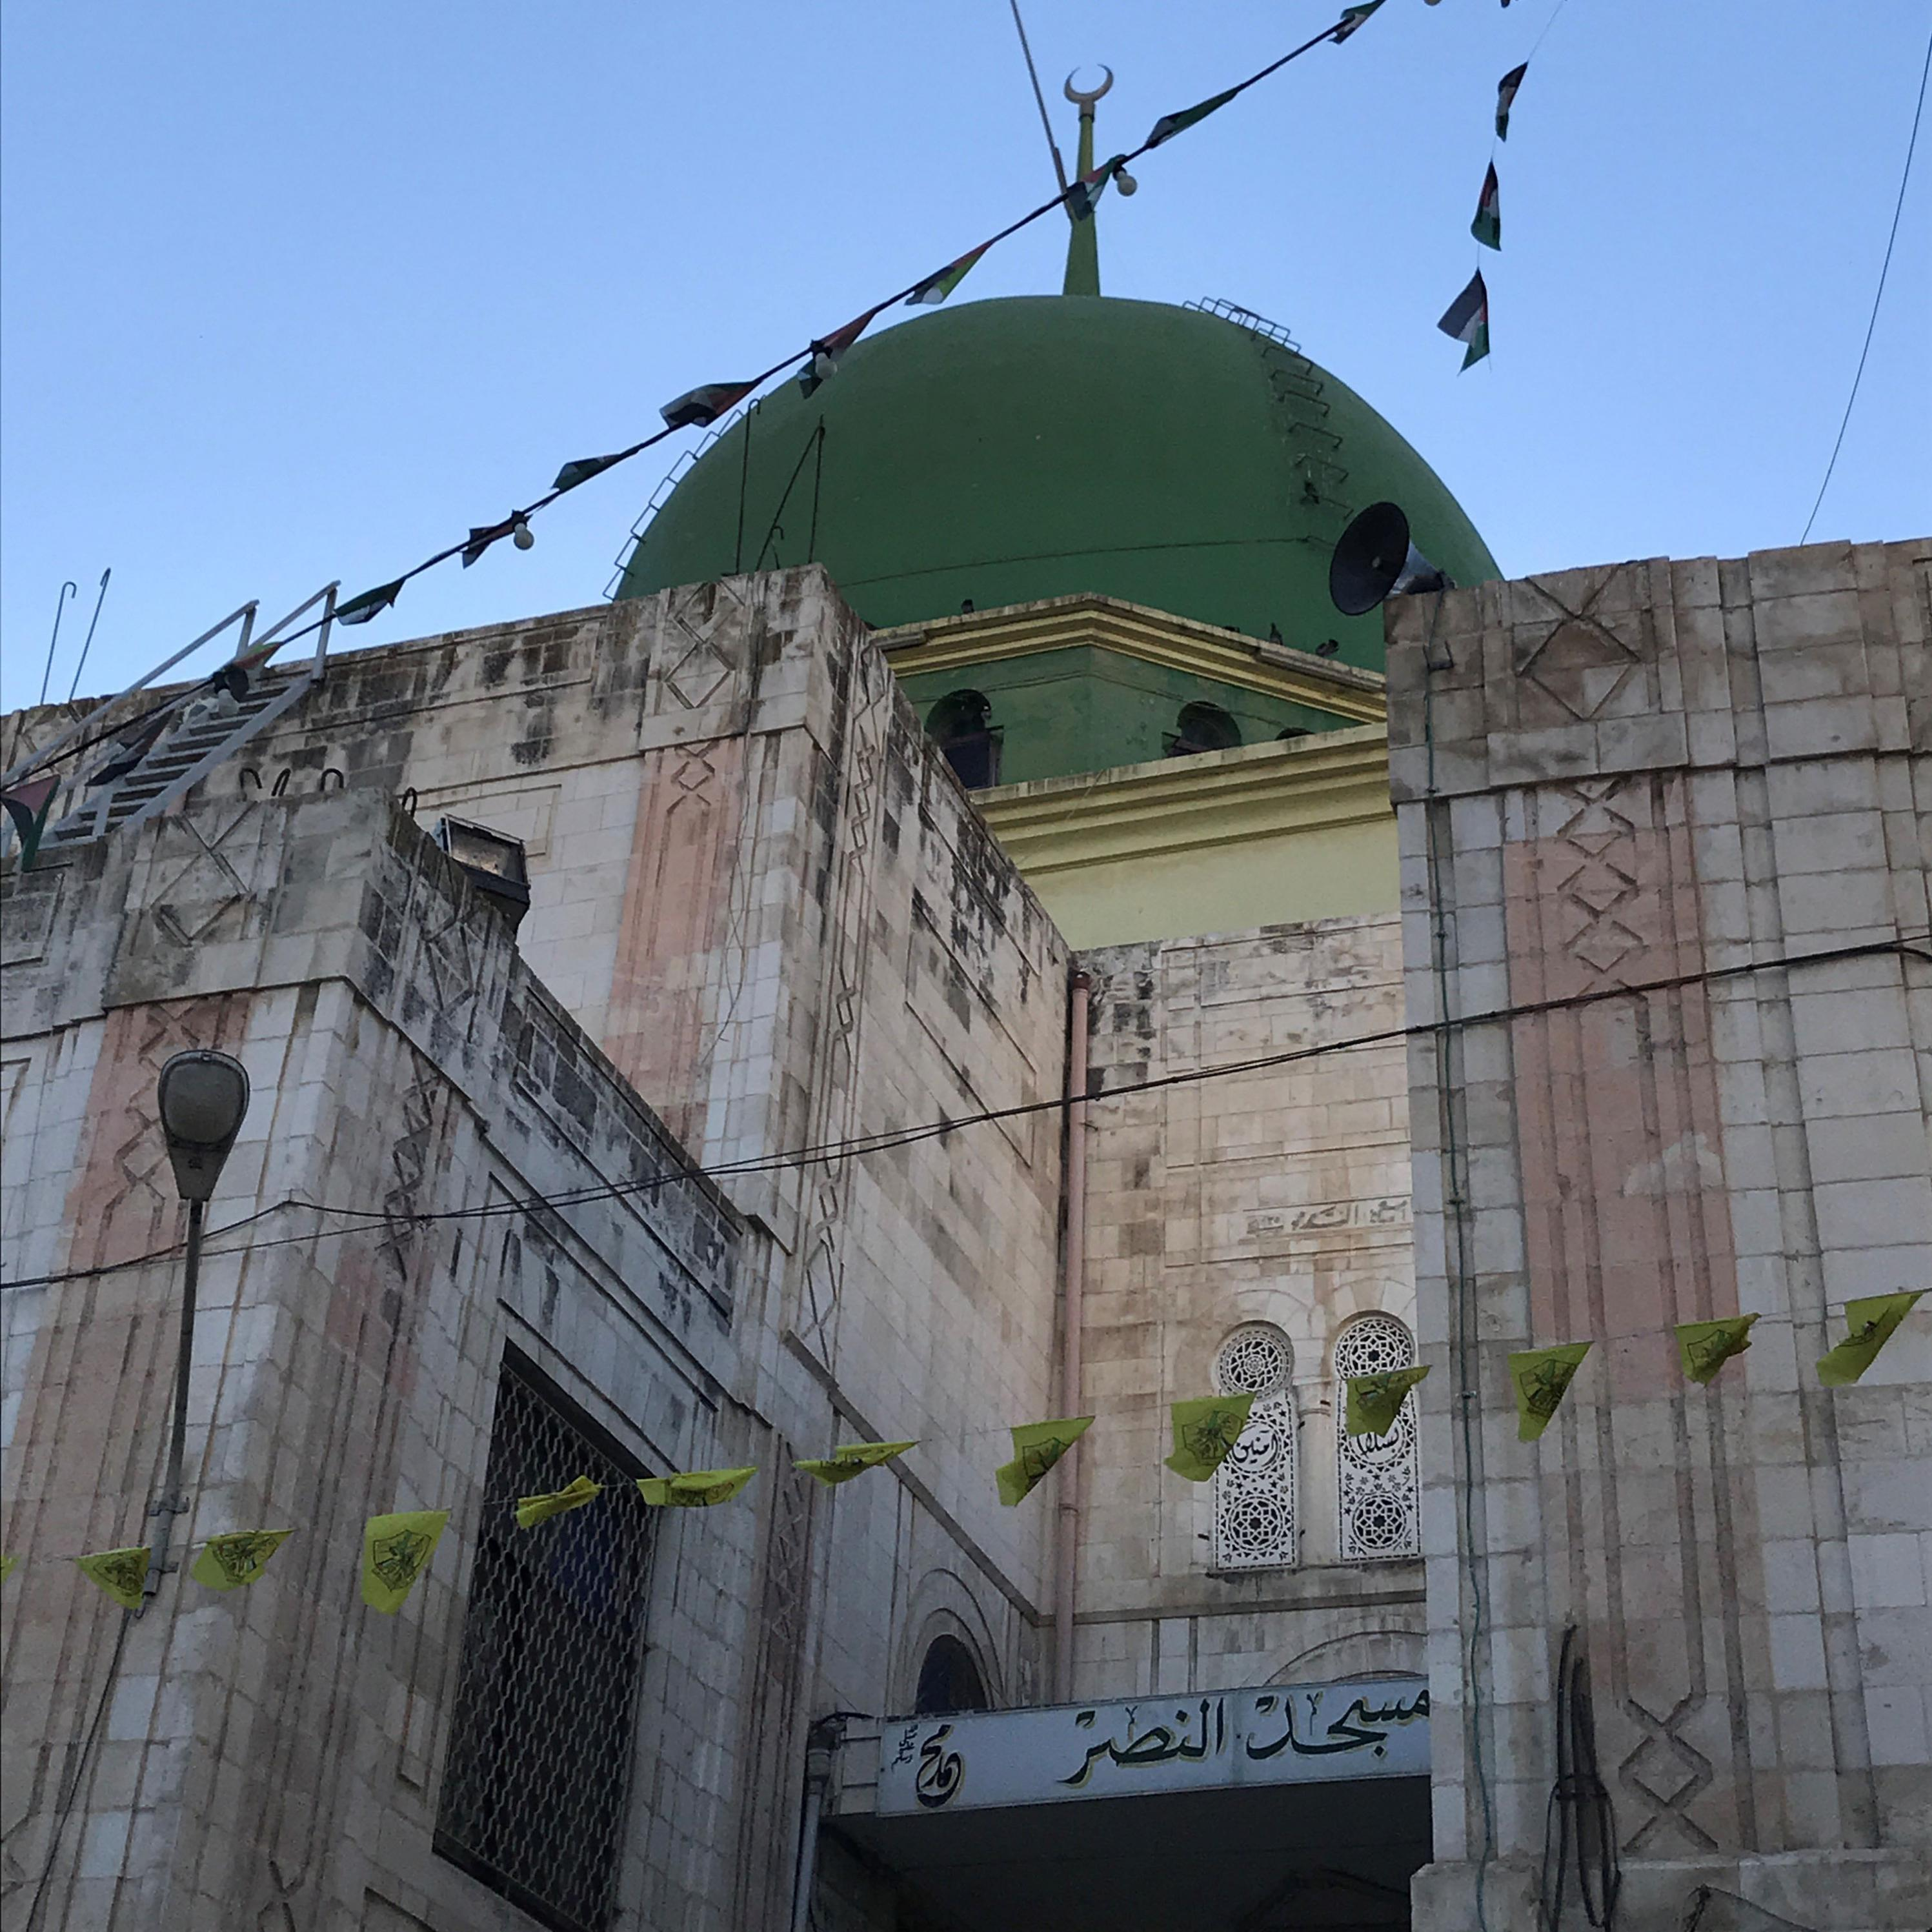 A mosque in Nablus